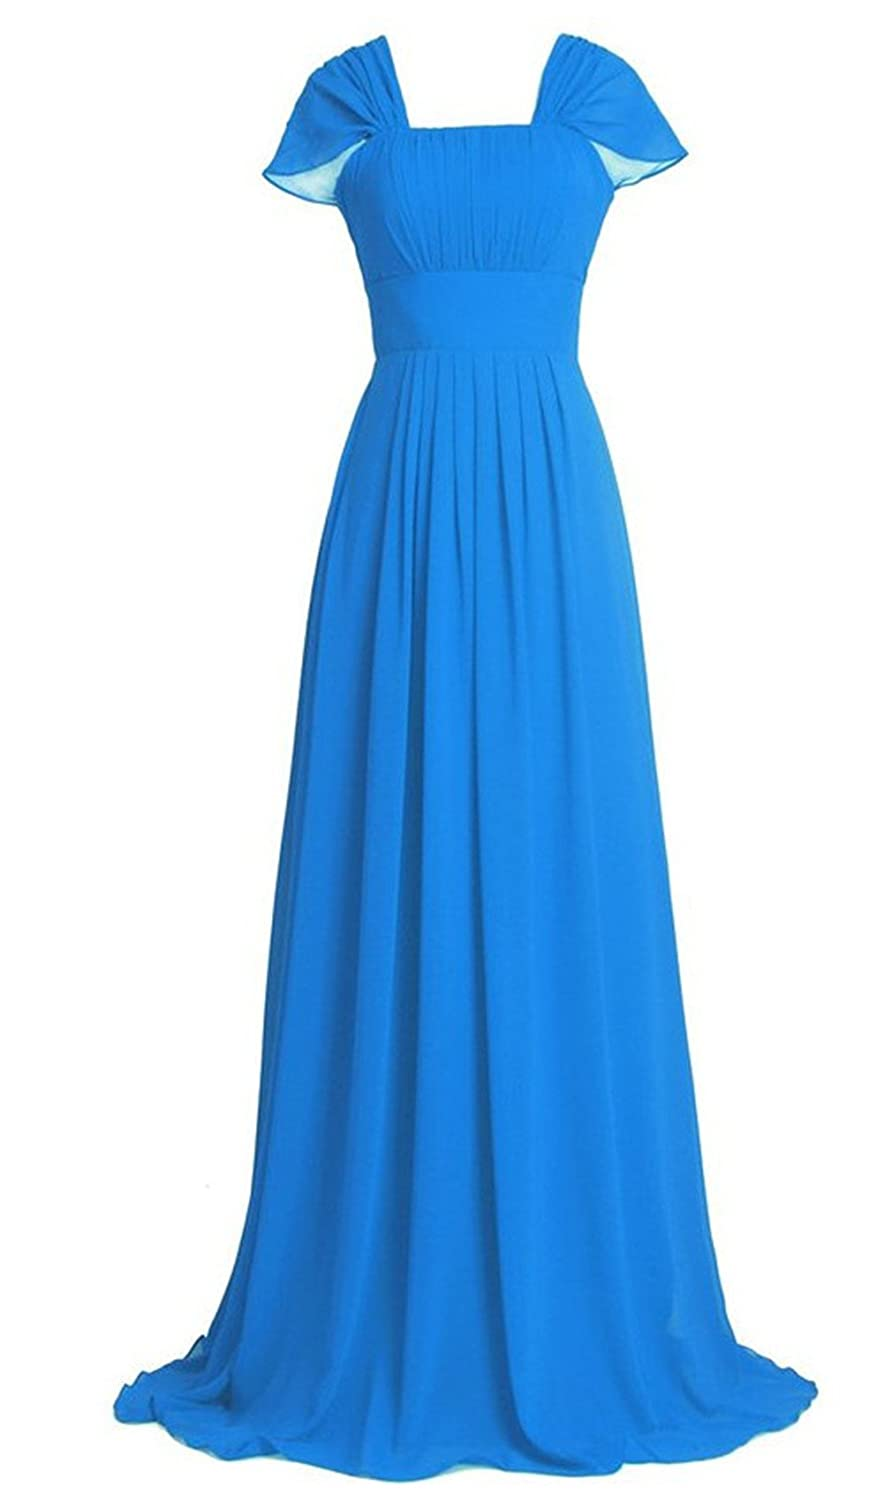 AngelDragon Simple Cap Sleeves Long Prom Dress Empire Evening Gowns